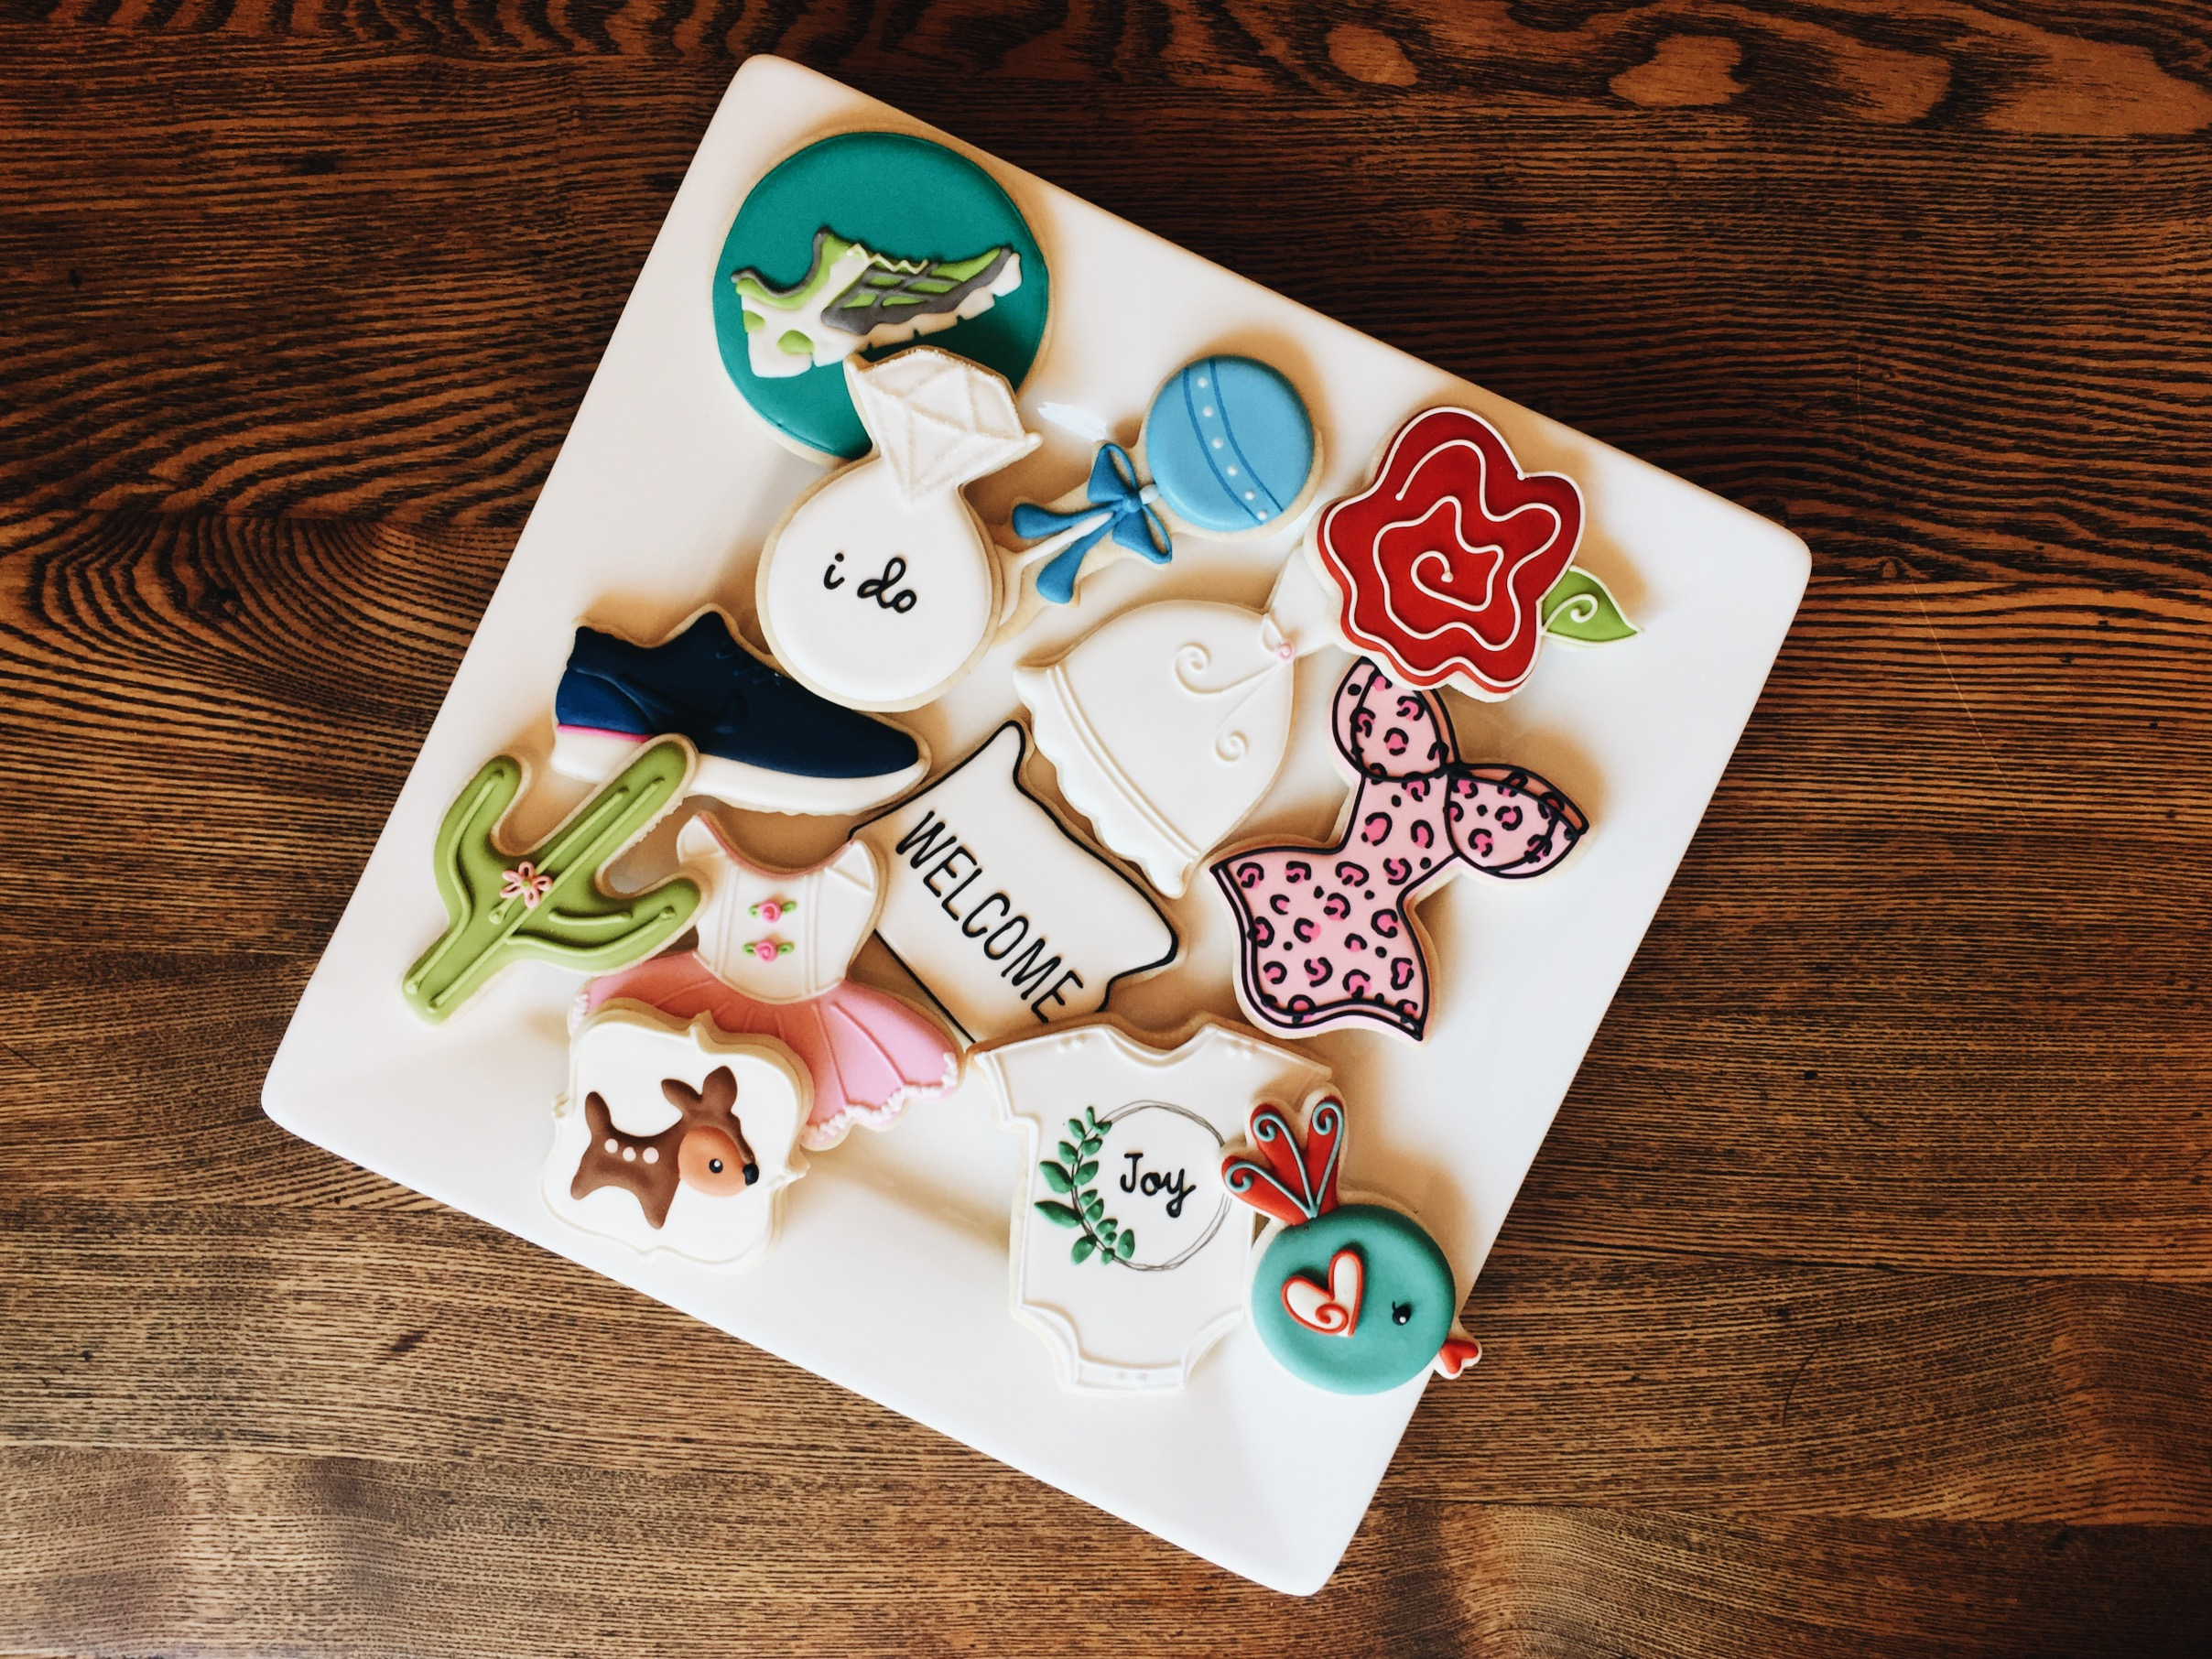 NOTE: Cookies are made in a kitchen which may contain known food allergens, including, but not limited to: wheat, eggs, milk, soy, peanuts and tree nuts.